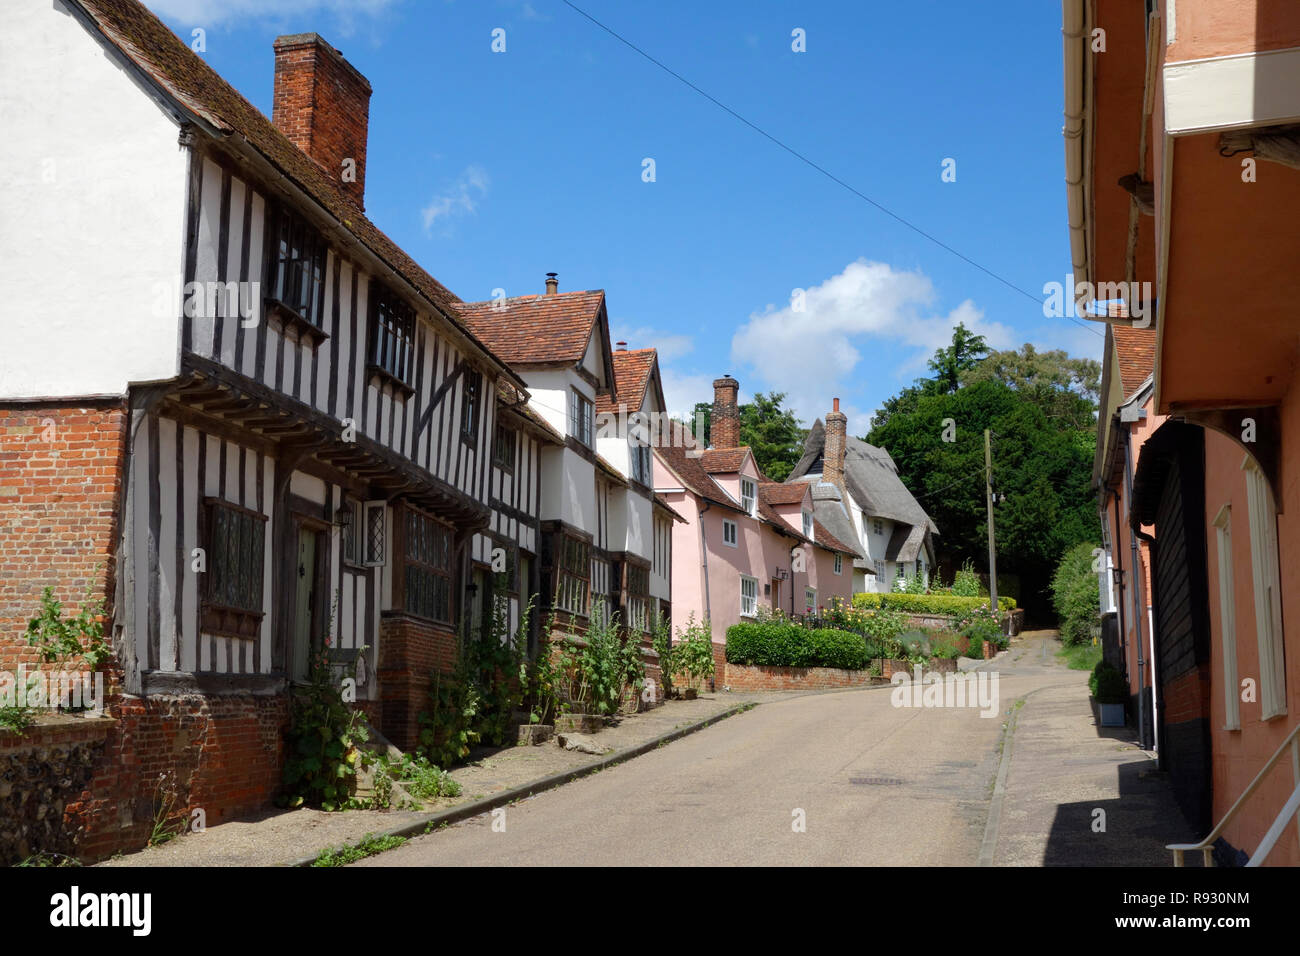 Timber-framed houses in the Street, Kersey, Suffolk - Stock Image